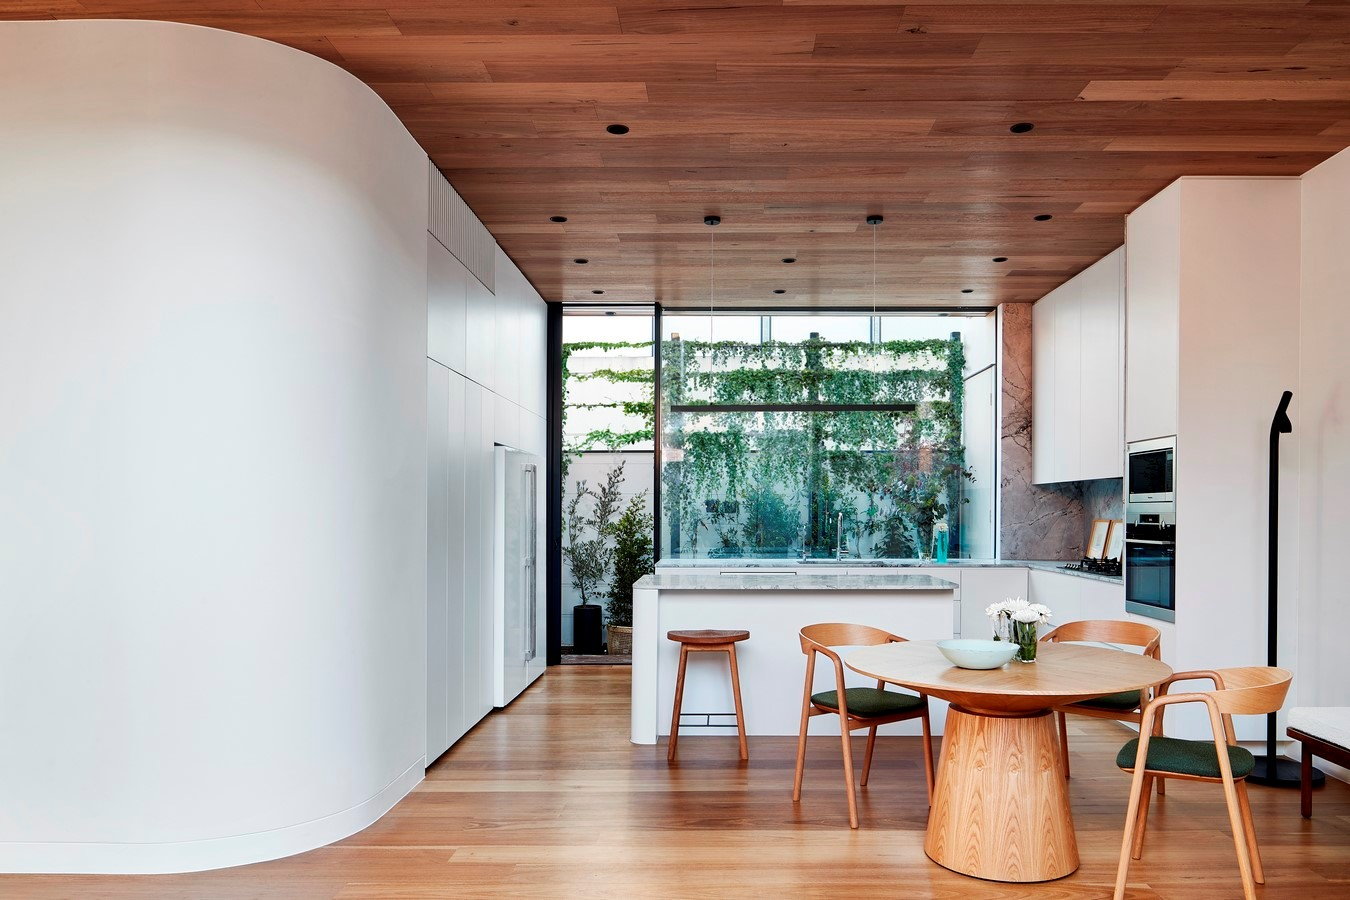 Envelop House is an innovative exploration of single level contemporary inner bayside living.: Sheet 2